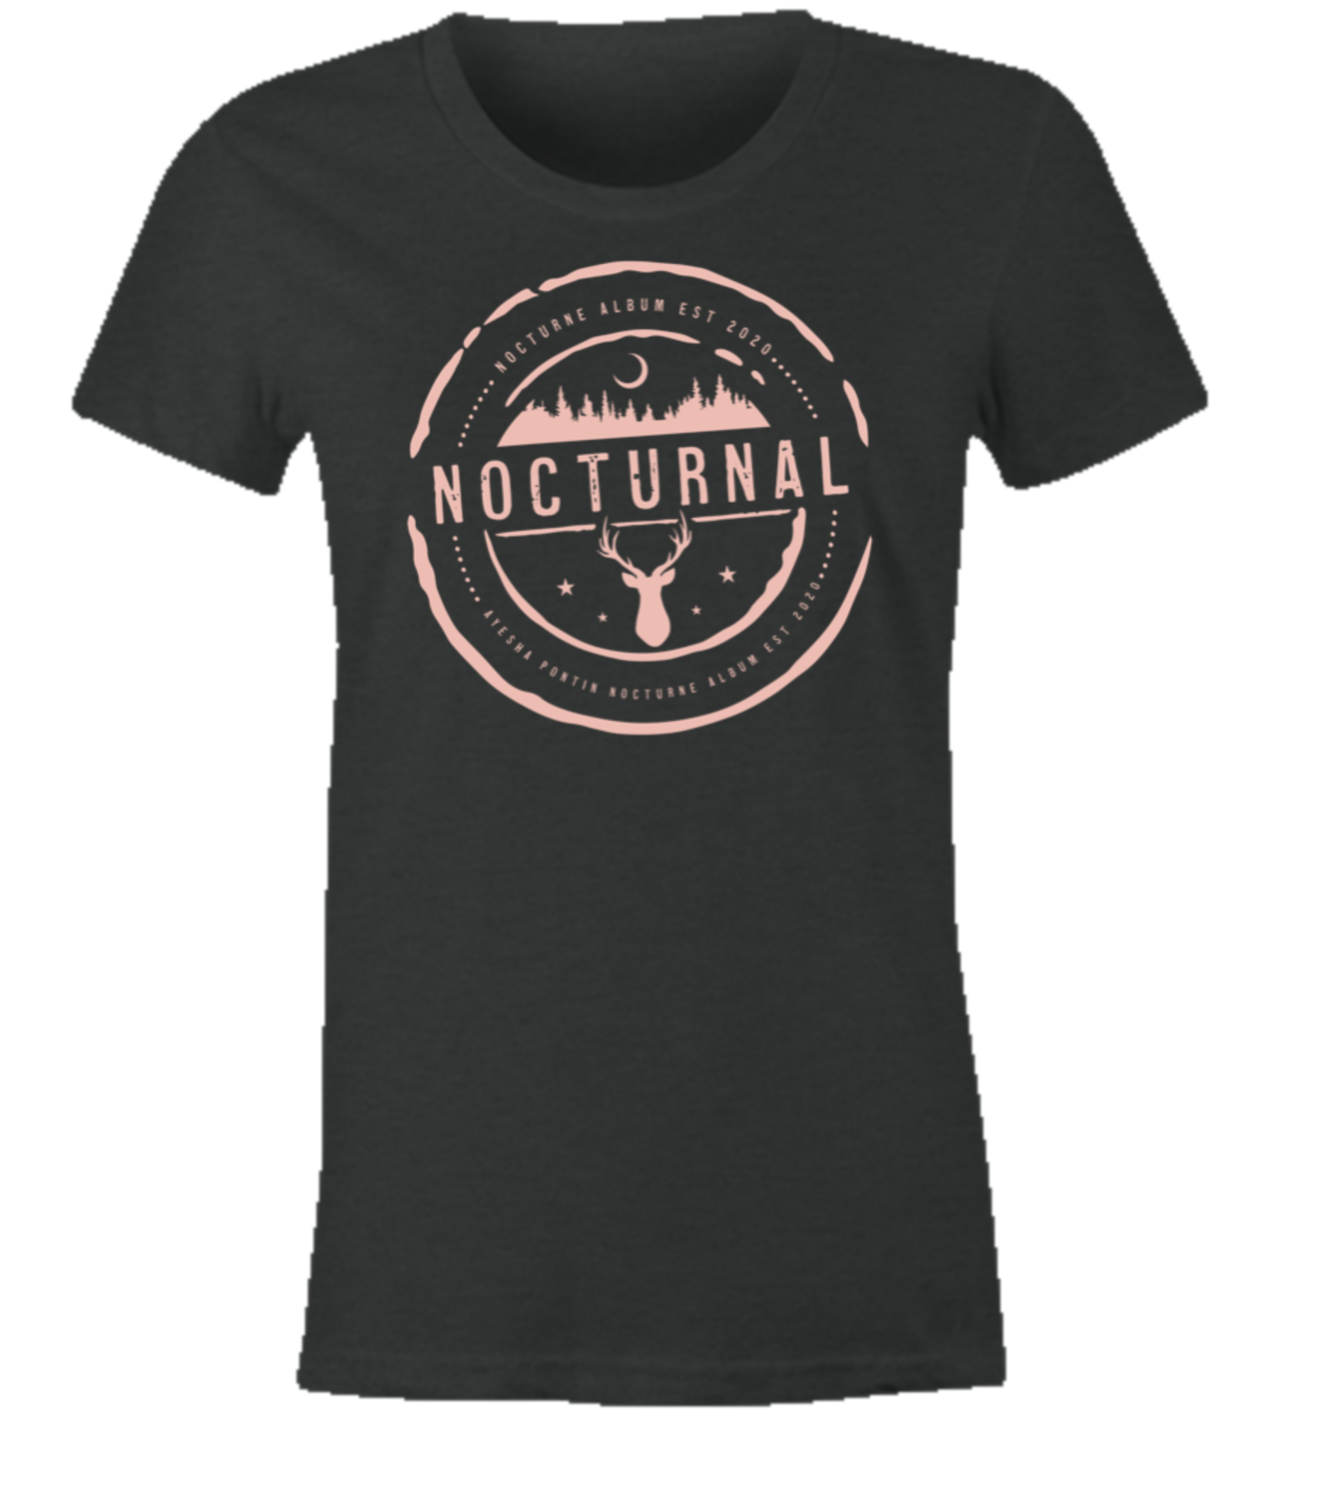 NOCTURNE Album Official Merch: Women's Soft Style Tee Shirt L